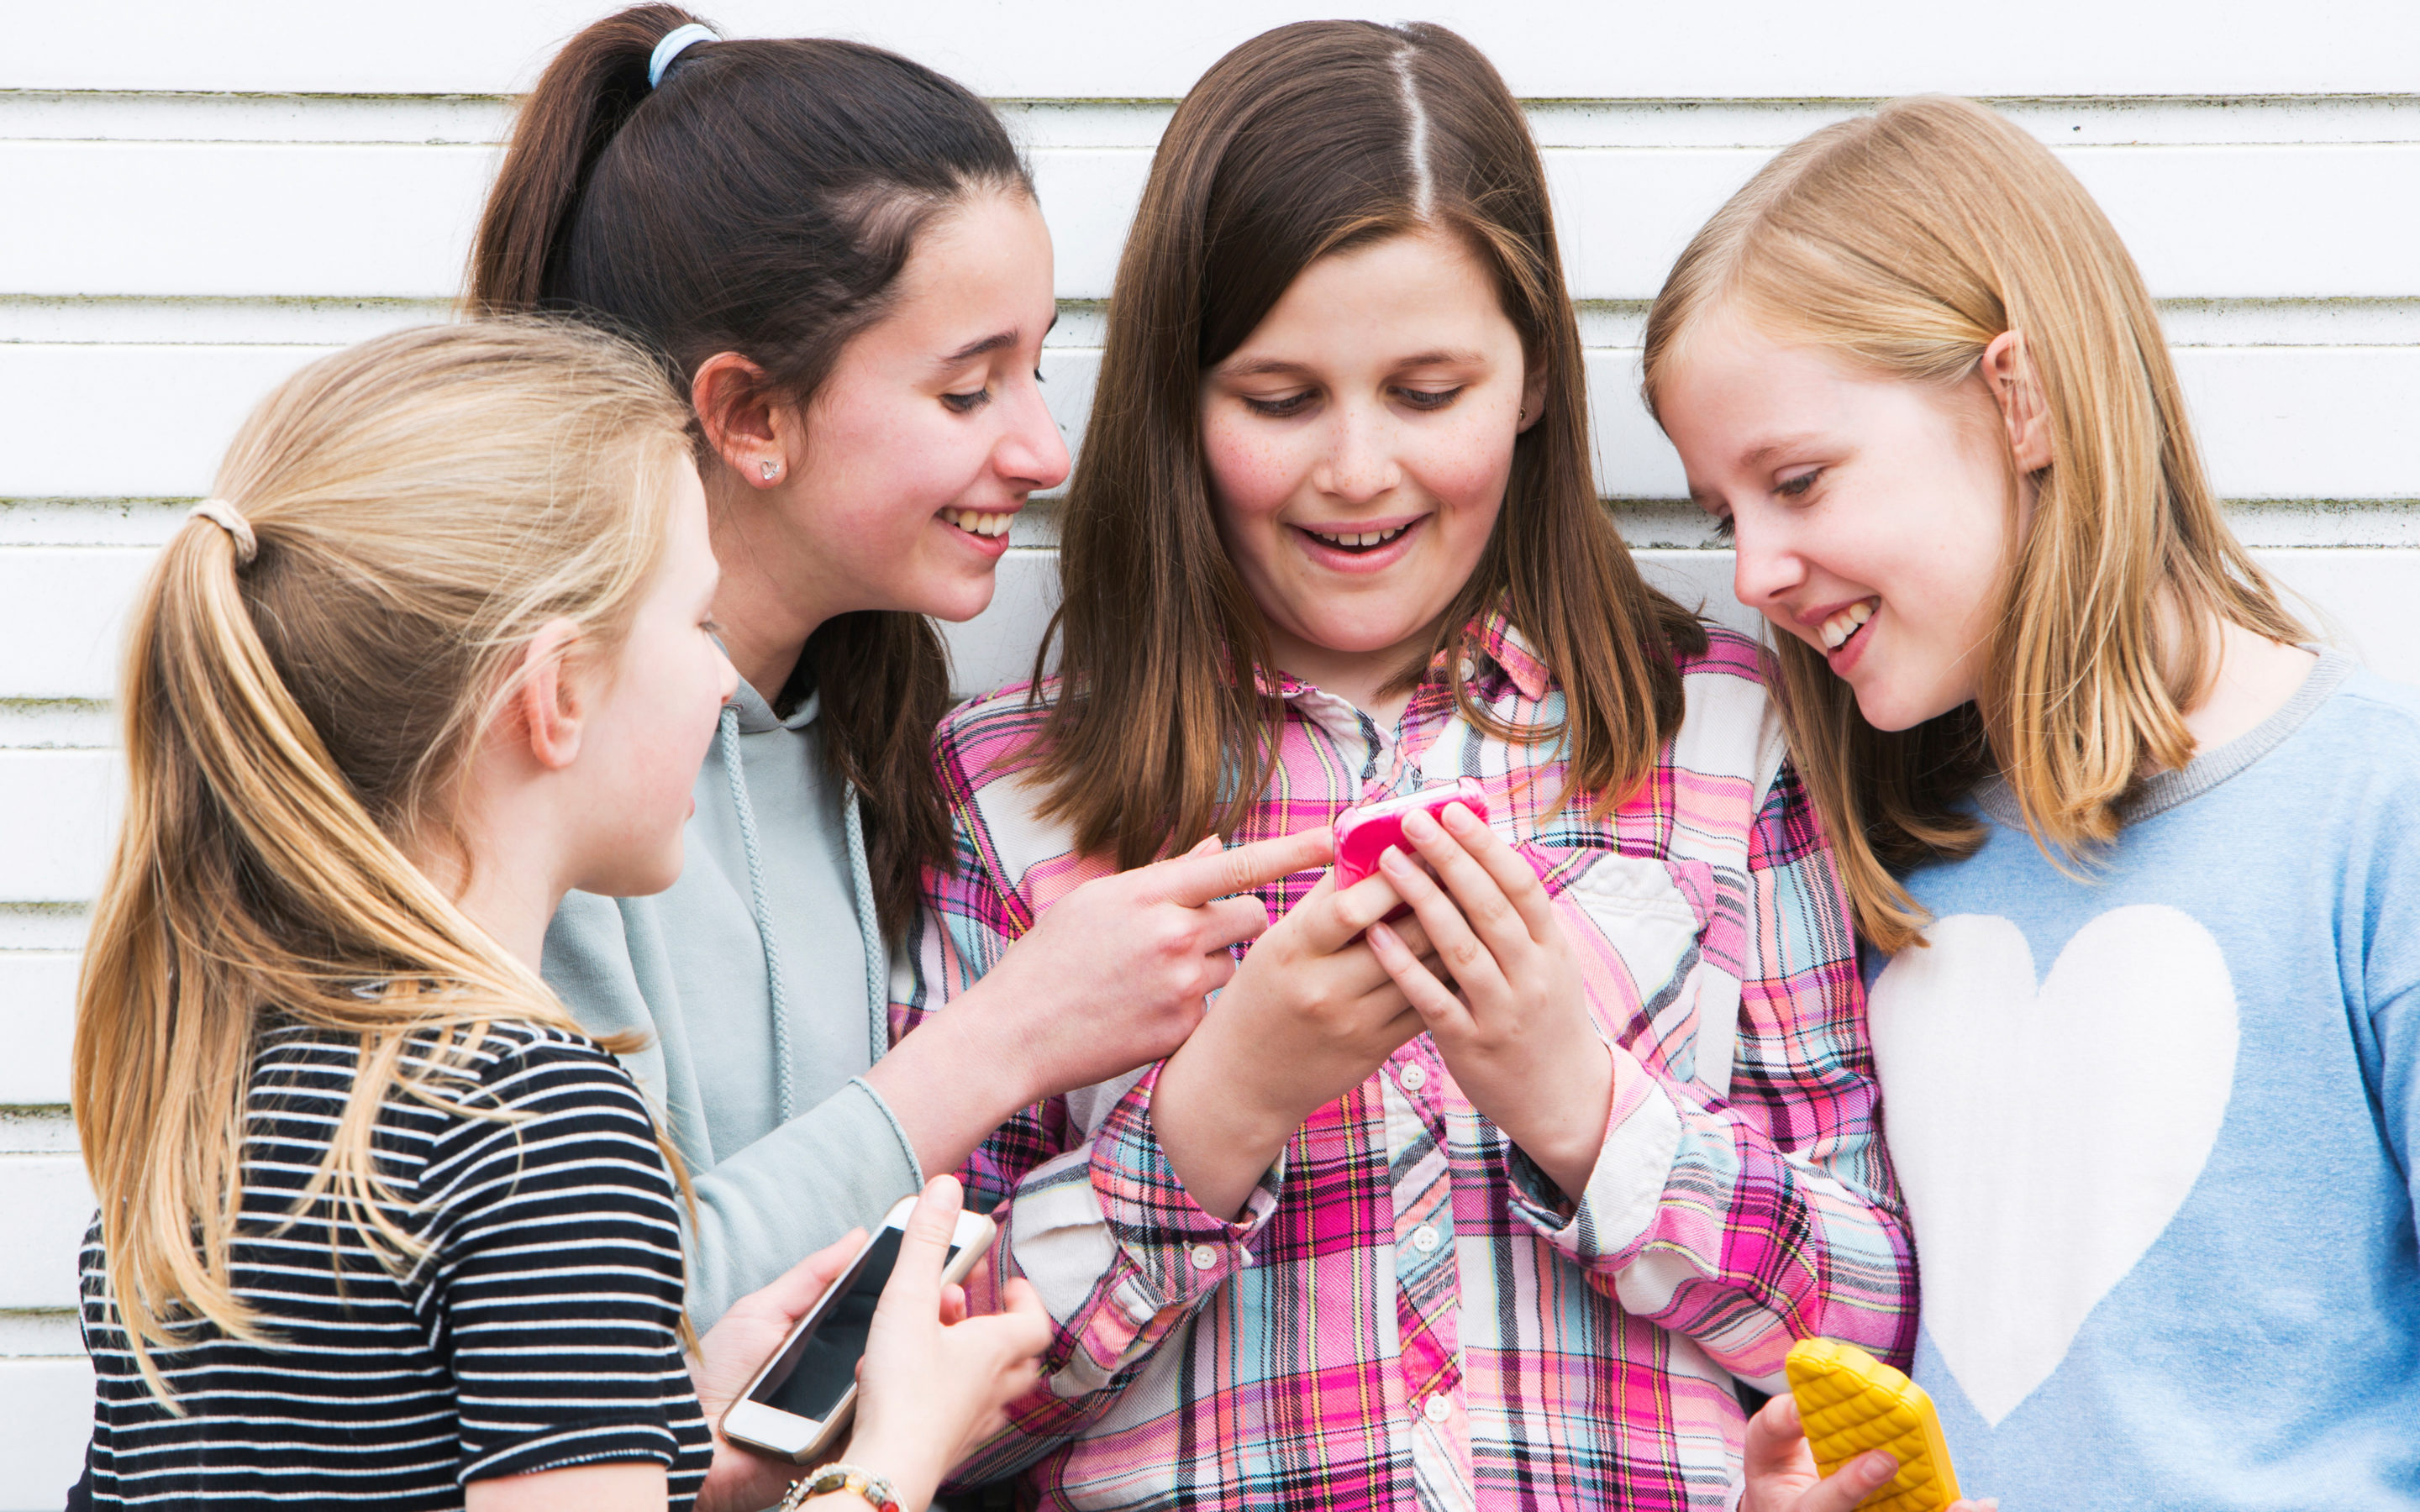 The 4 Best Practices For Keeping Your Child Safe While Using Cell Phones and Social Media